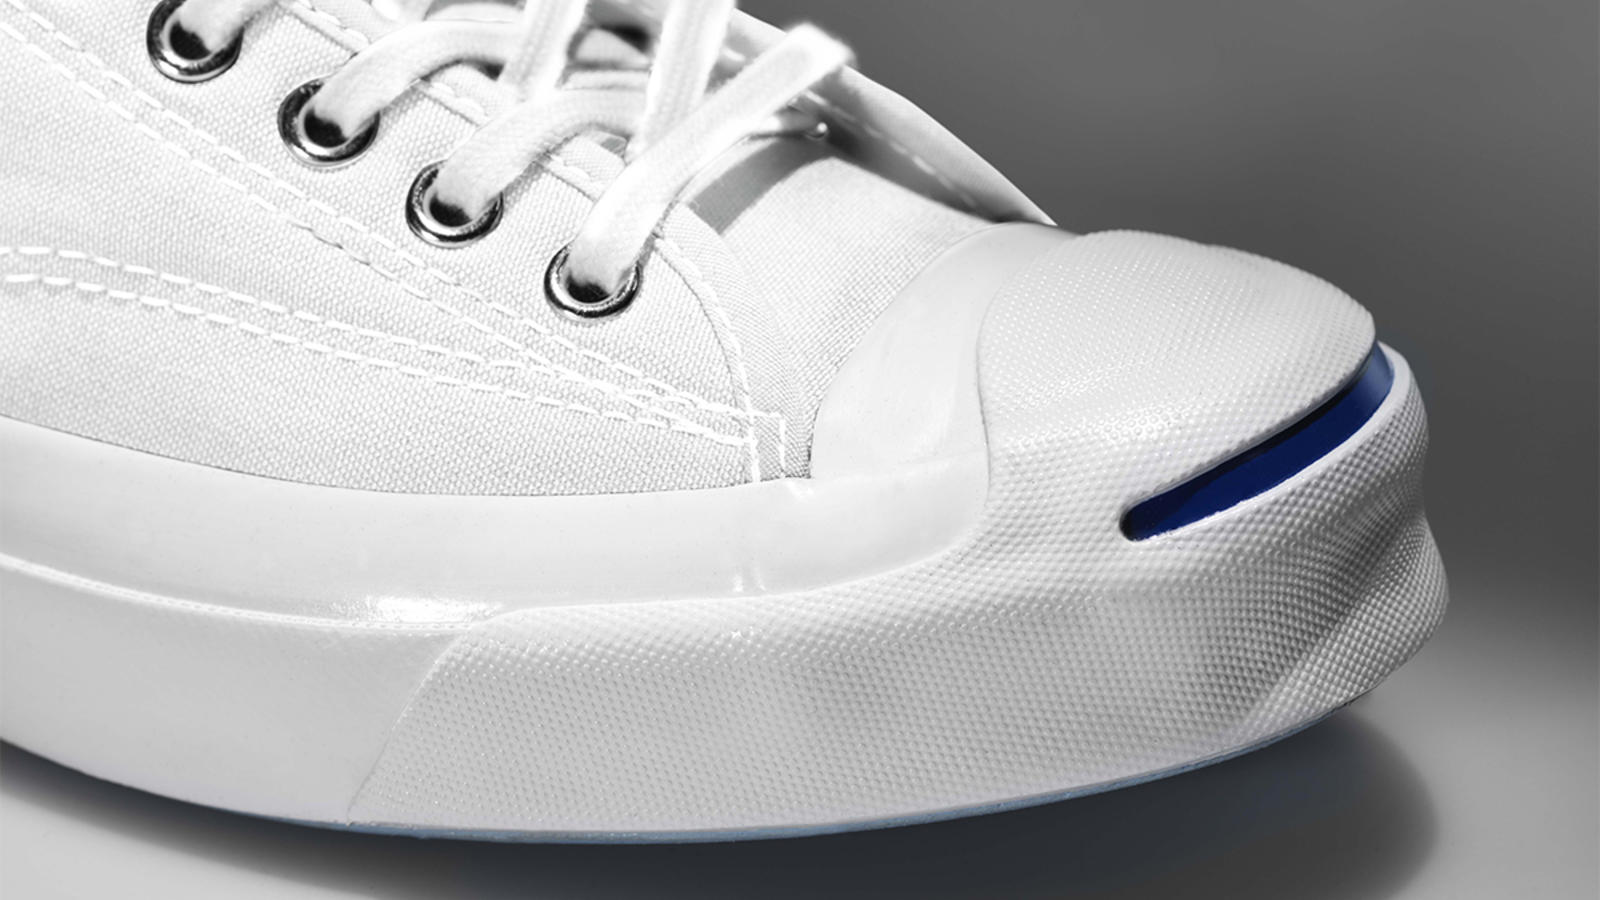 CONVERSE DEBUTS THE JACK PURCELL SIGNATURE SNEAKER Nike News